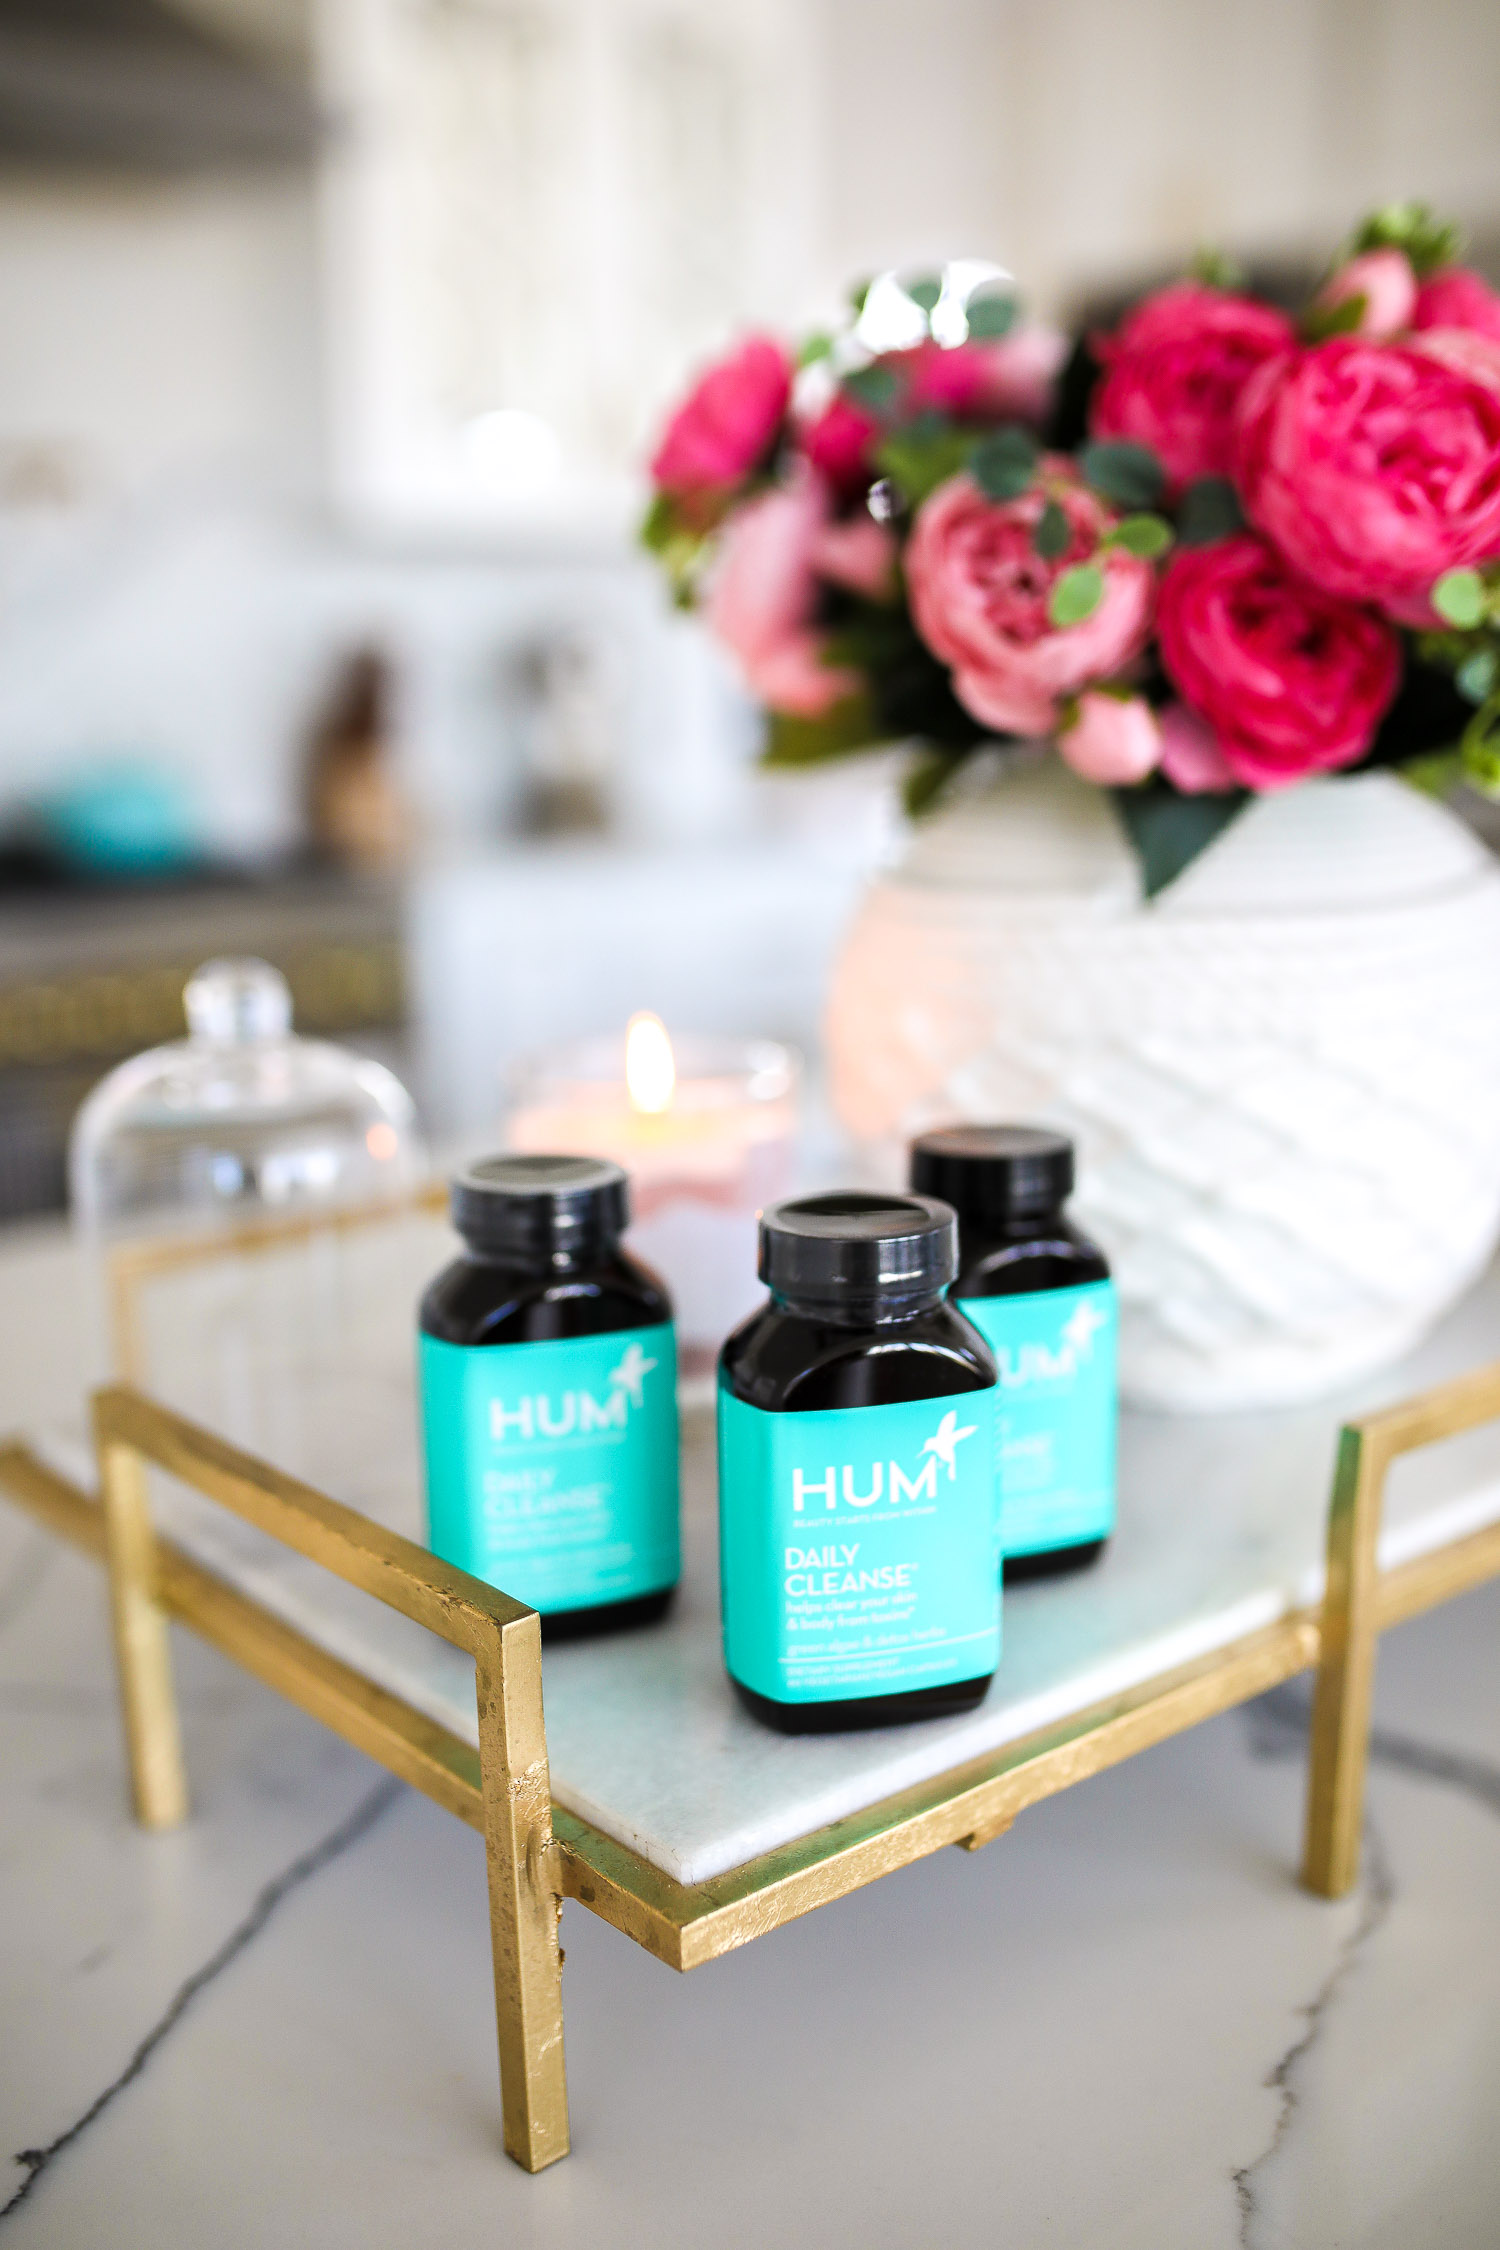 hum nutrition daily cleanse supplements, skin clearing vitamins, green algae vitamins, emily gemma skincare routine | Hum Daily Cleanse by popular US lifestyle blog, The Sweetest Thing: image of 3 bottle of Hum Daily Cleanse supplement bottles next to a white ceramic vase with pink roses in it.